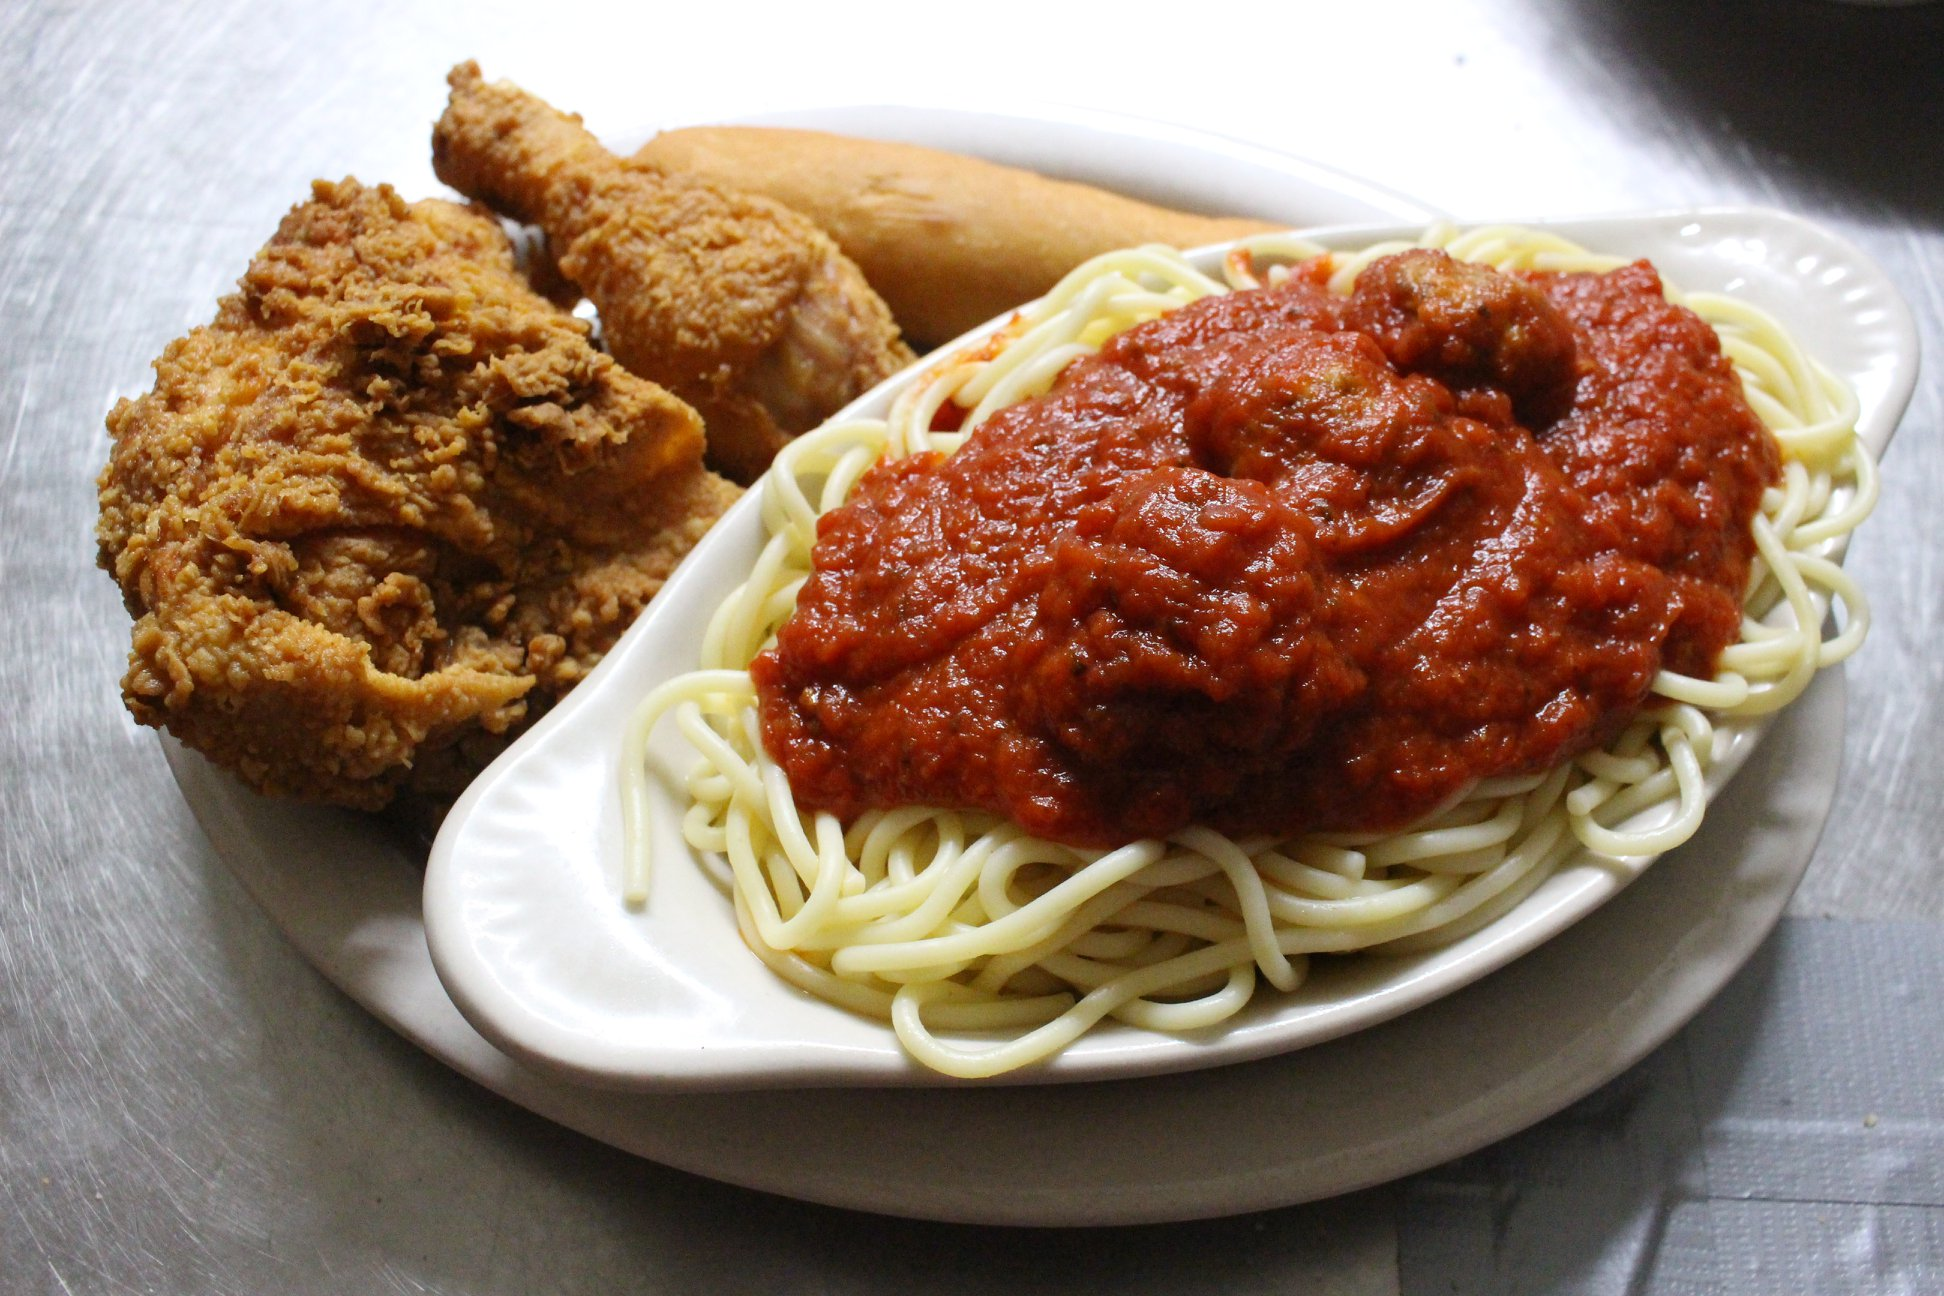 Fried chicken and a bowl of spaghetti with meat sauce